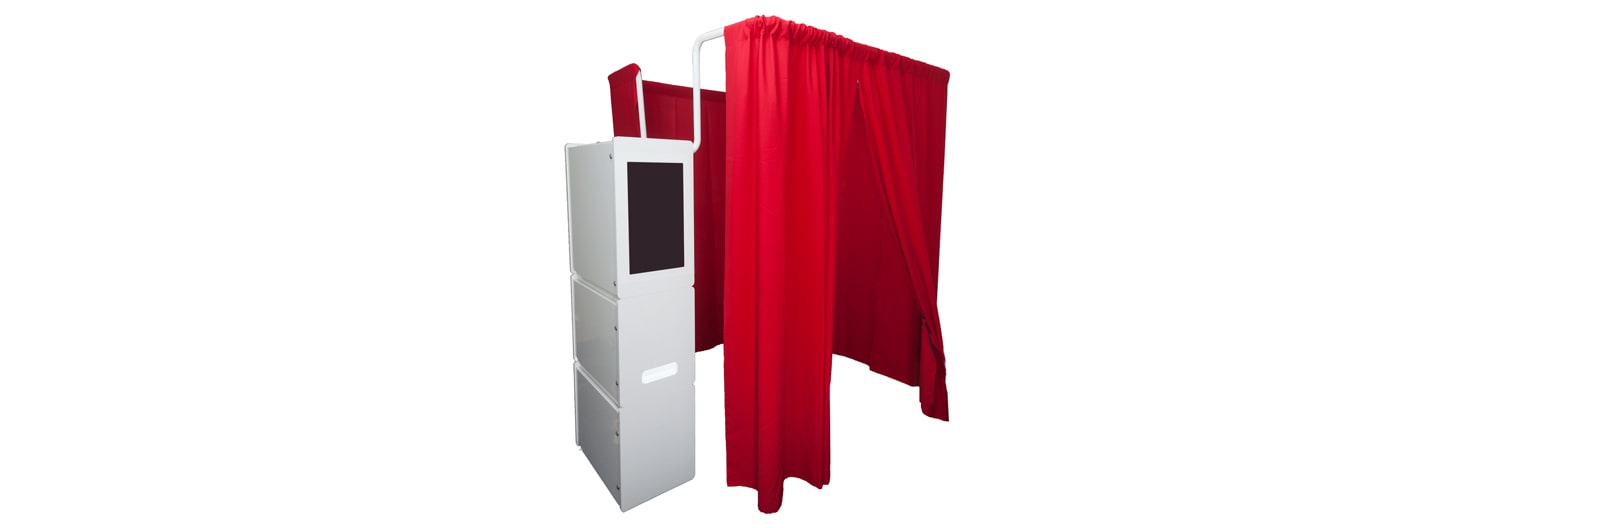 Event-Photo-Booth-Hire-Sydney-Enclosed-Photo-Booth-Hire